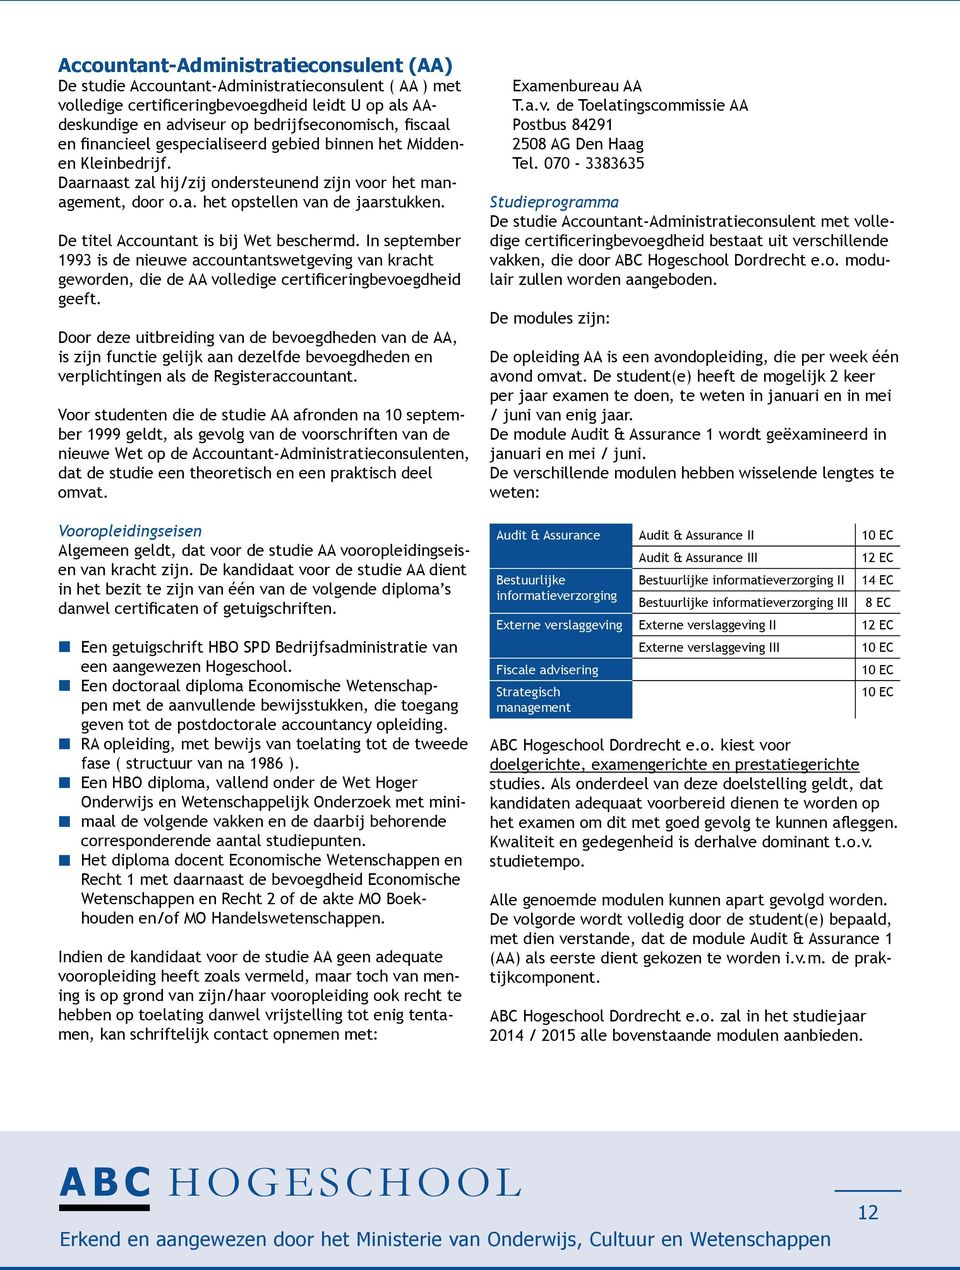 De titel Accountant is bij Wet beschermd. In september 1993 is de nieuwe accountantswetgeving van kracht geworden, die de AA volledige certificeringbevoegdheid geeft.